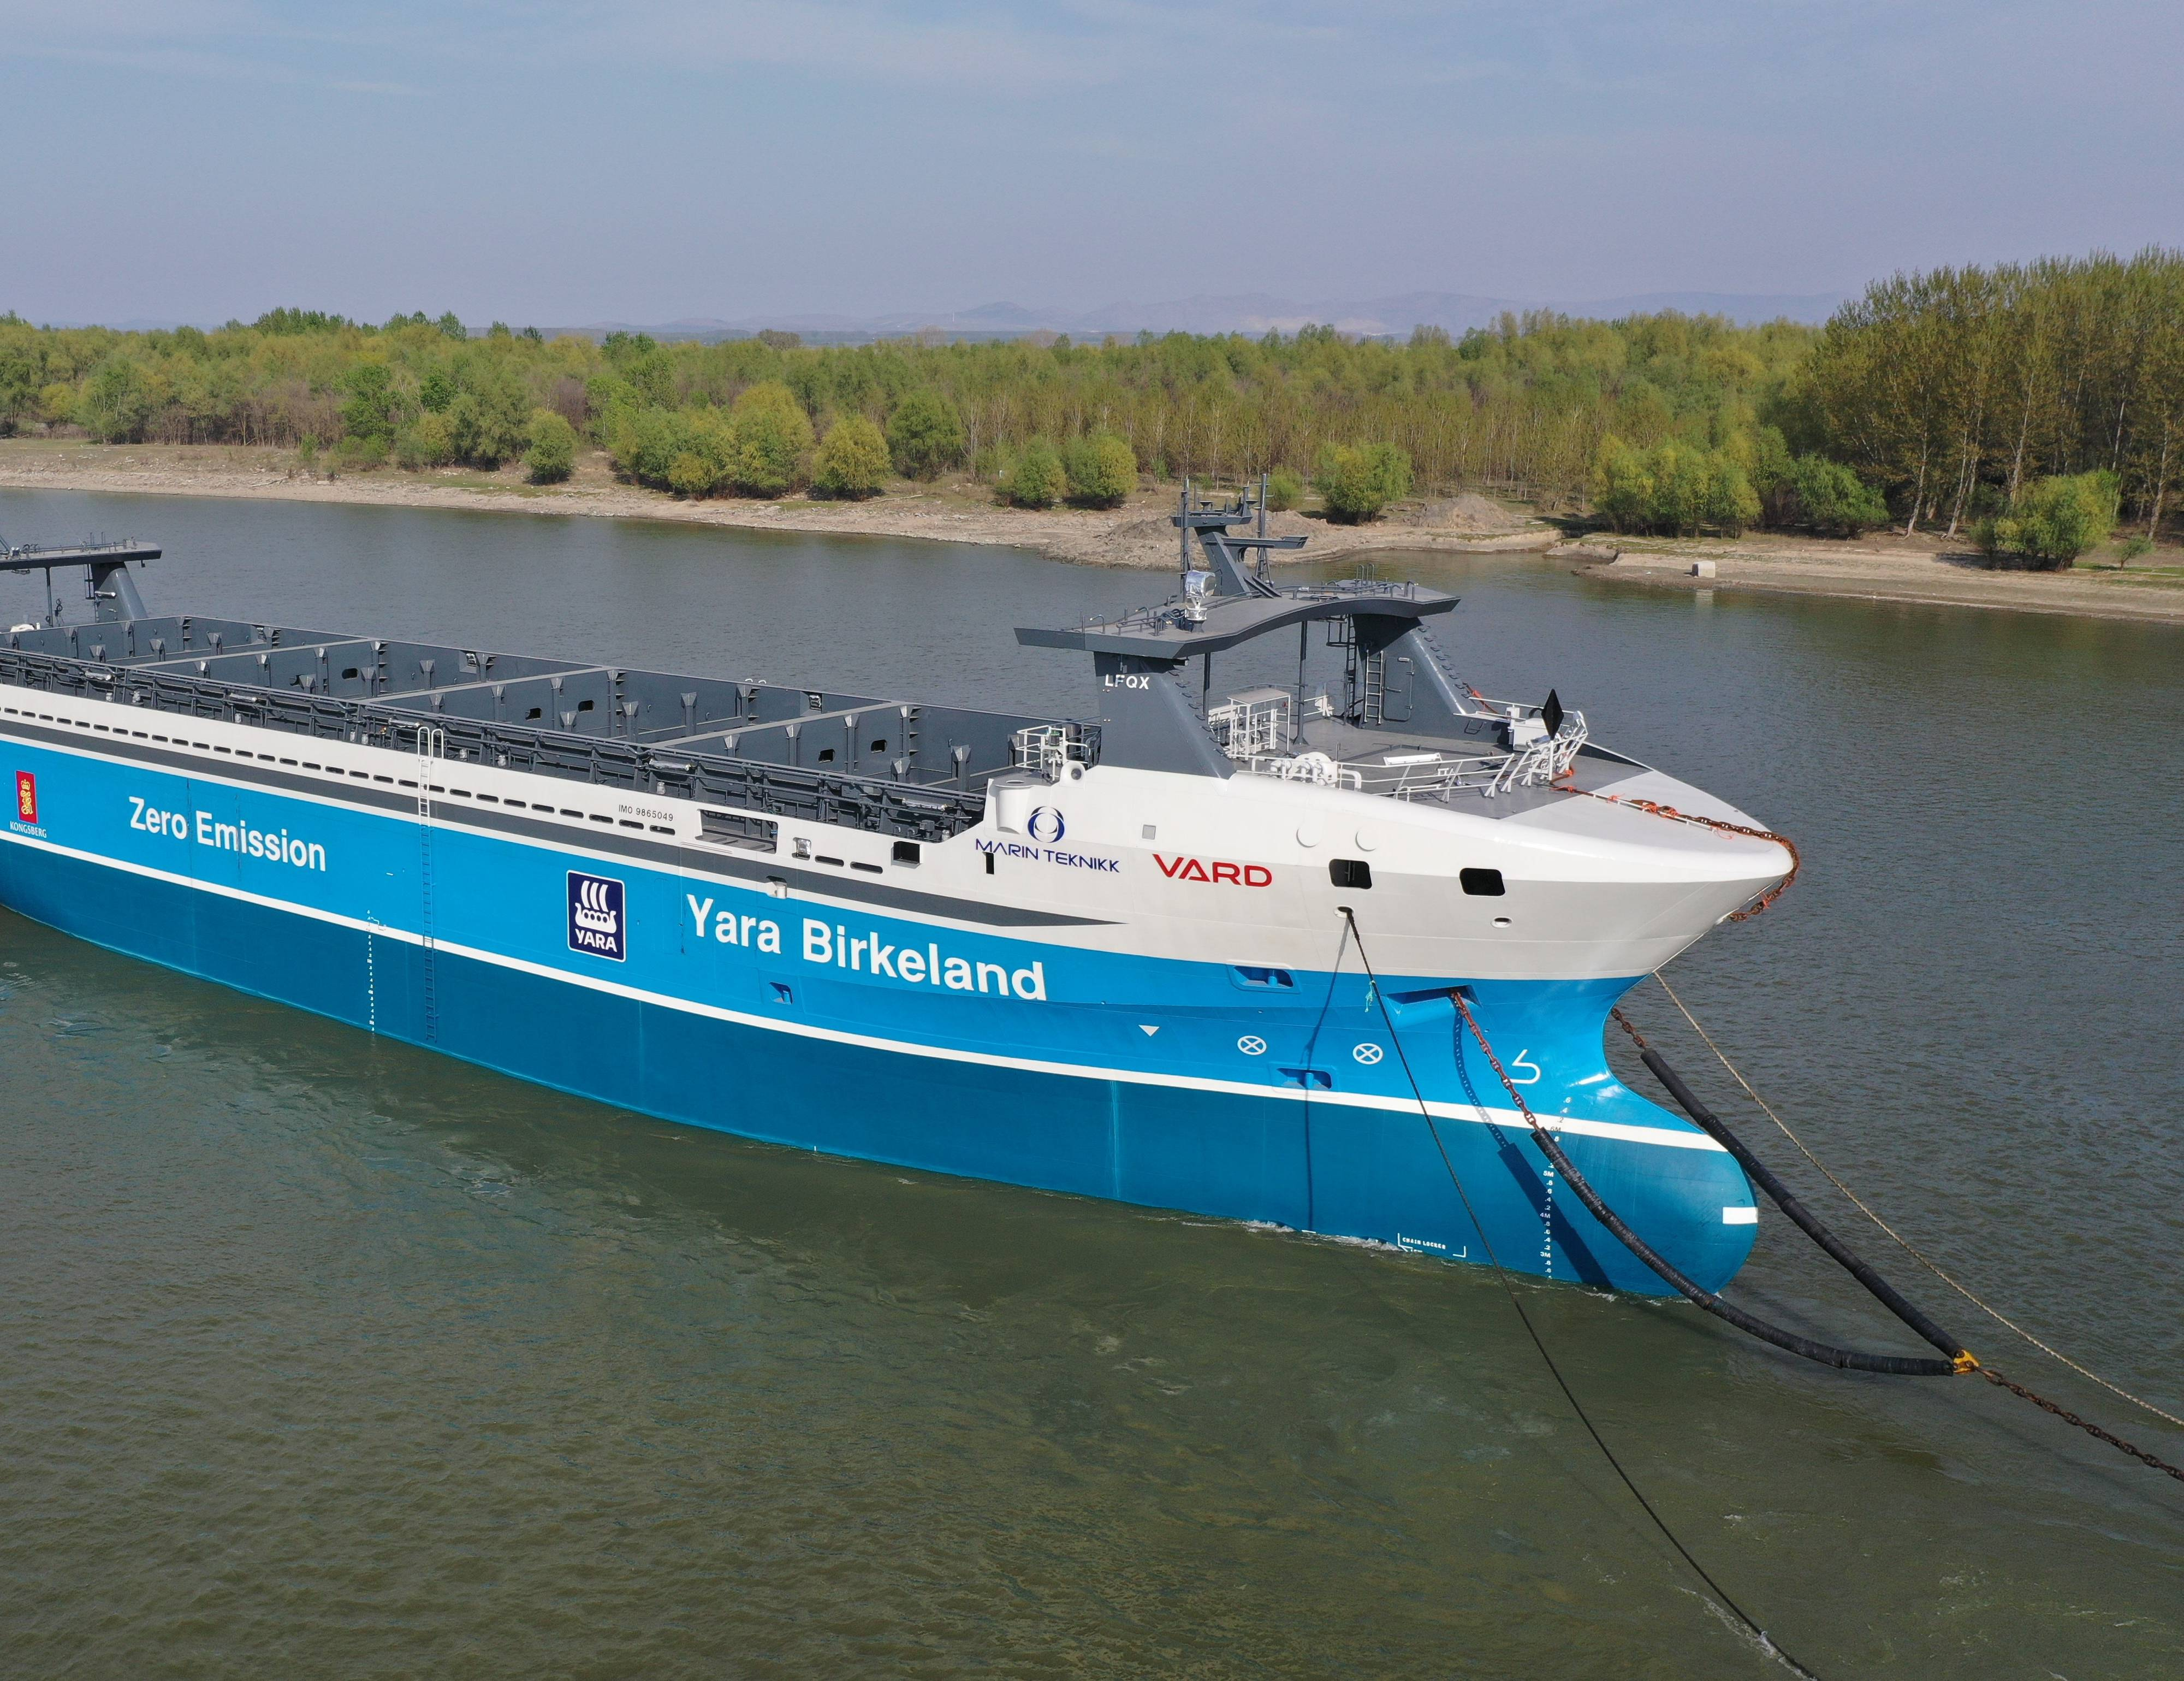 """A fully electric container ship called the MV Yara Birkeland moored in outdoor waters. The ship has its name and the phrase """"Zero Emission"""" printed on its side in large lettering."""